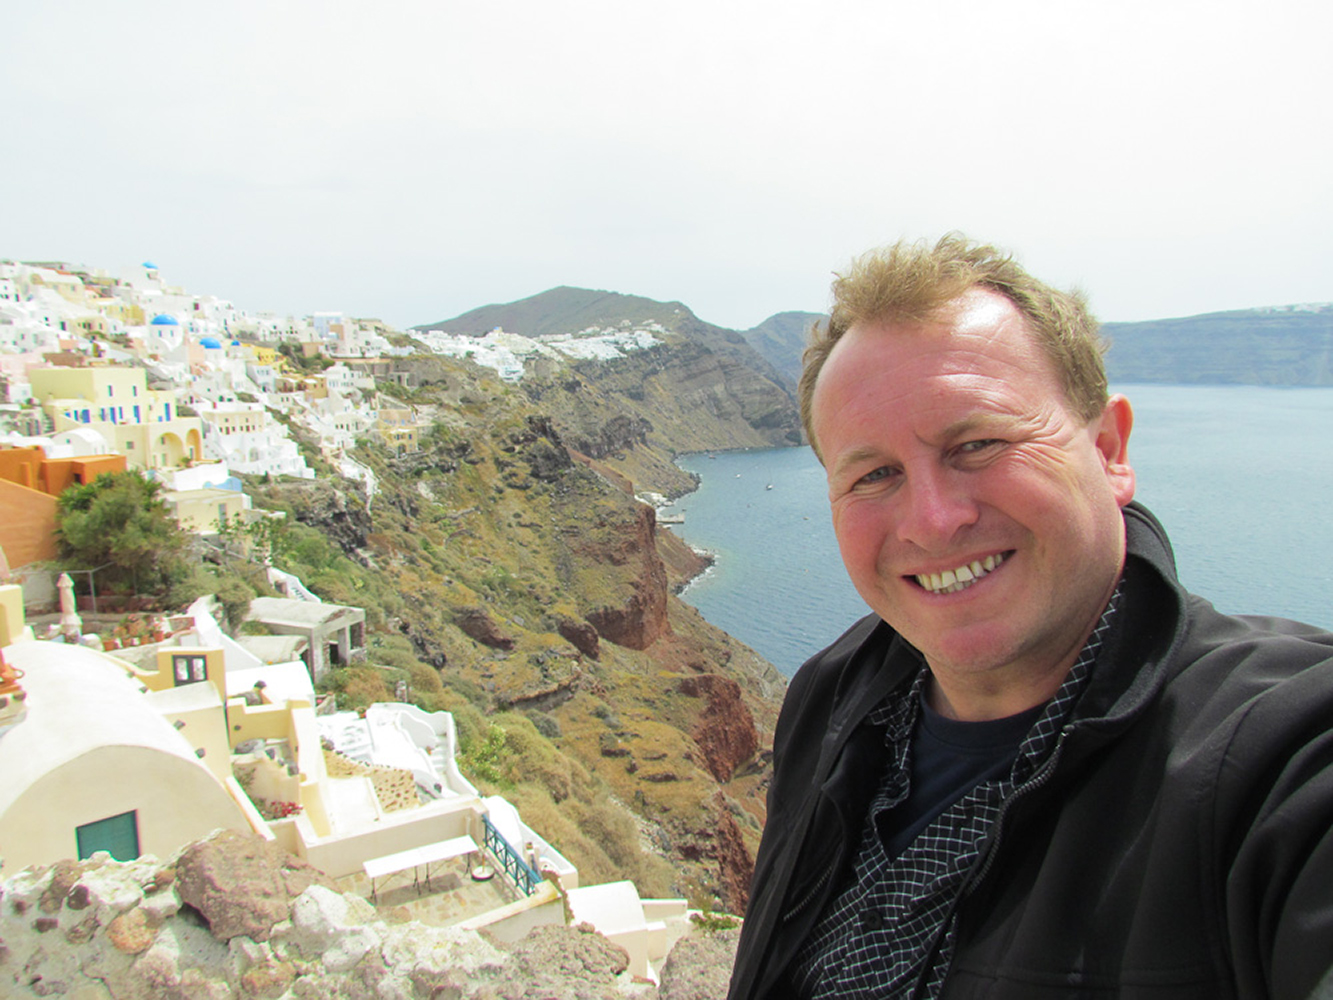 Oia, Santorini, Greece. One of the most photographed places in the World